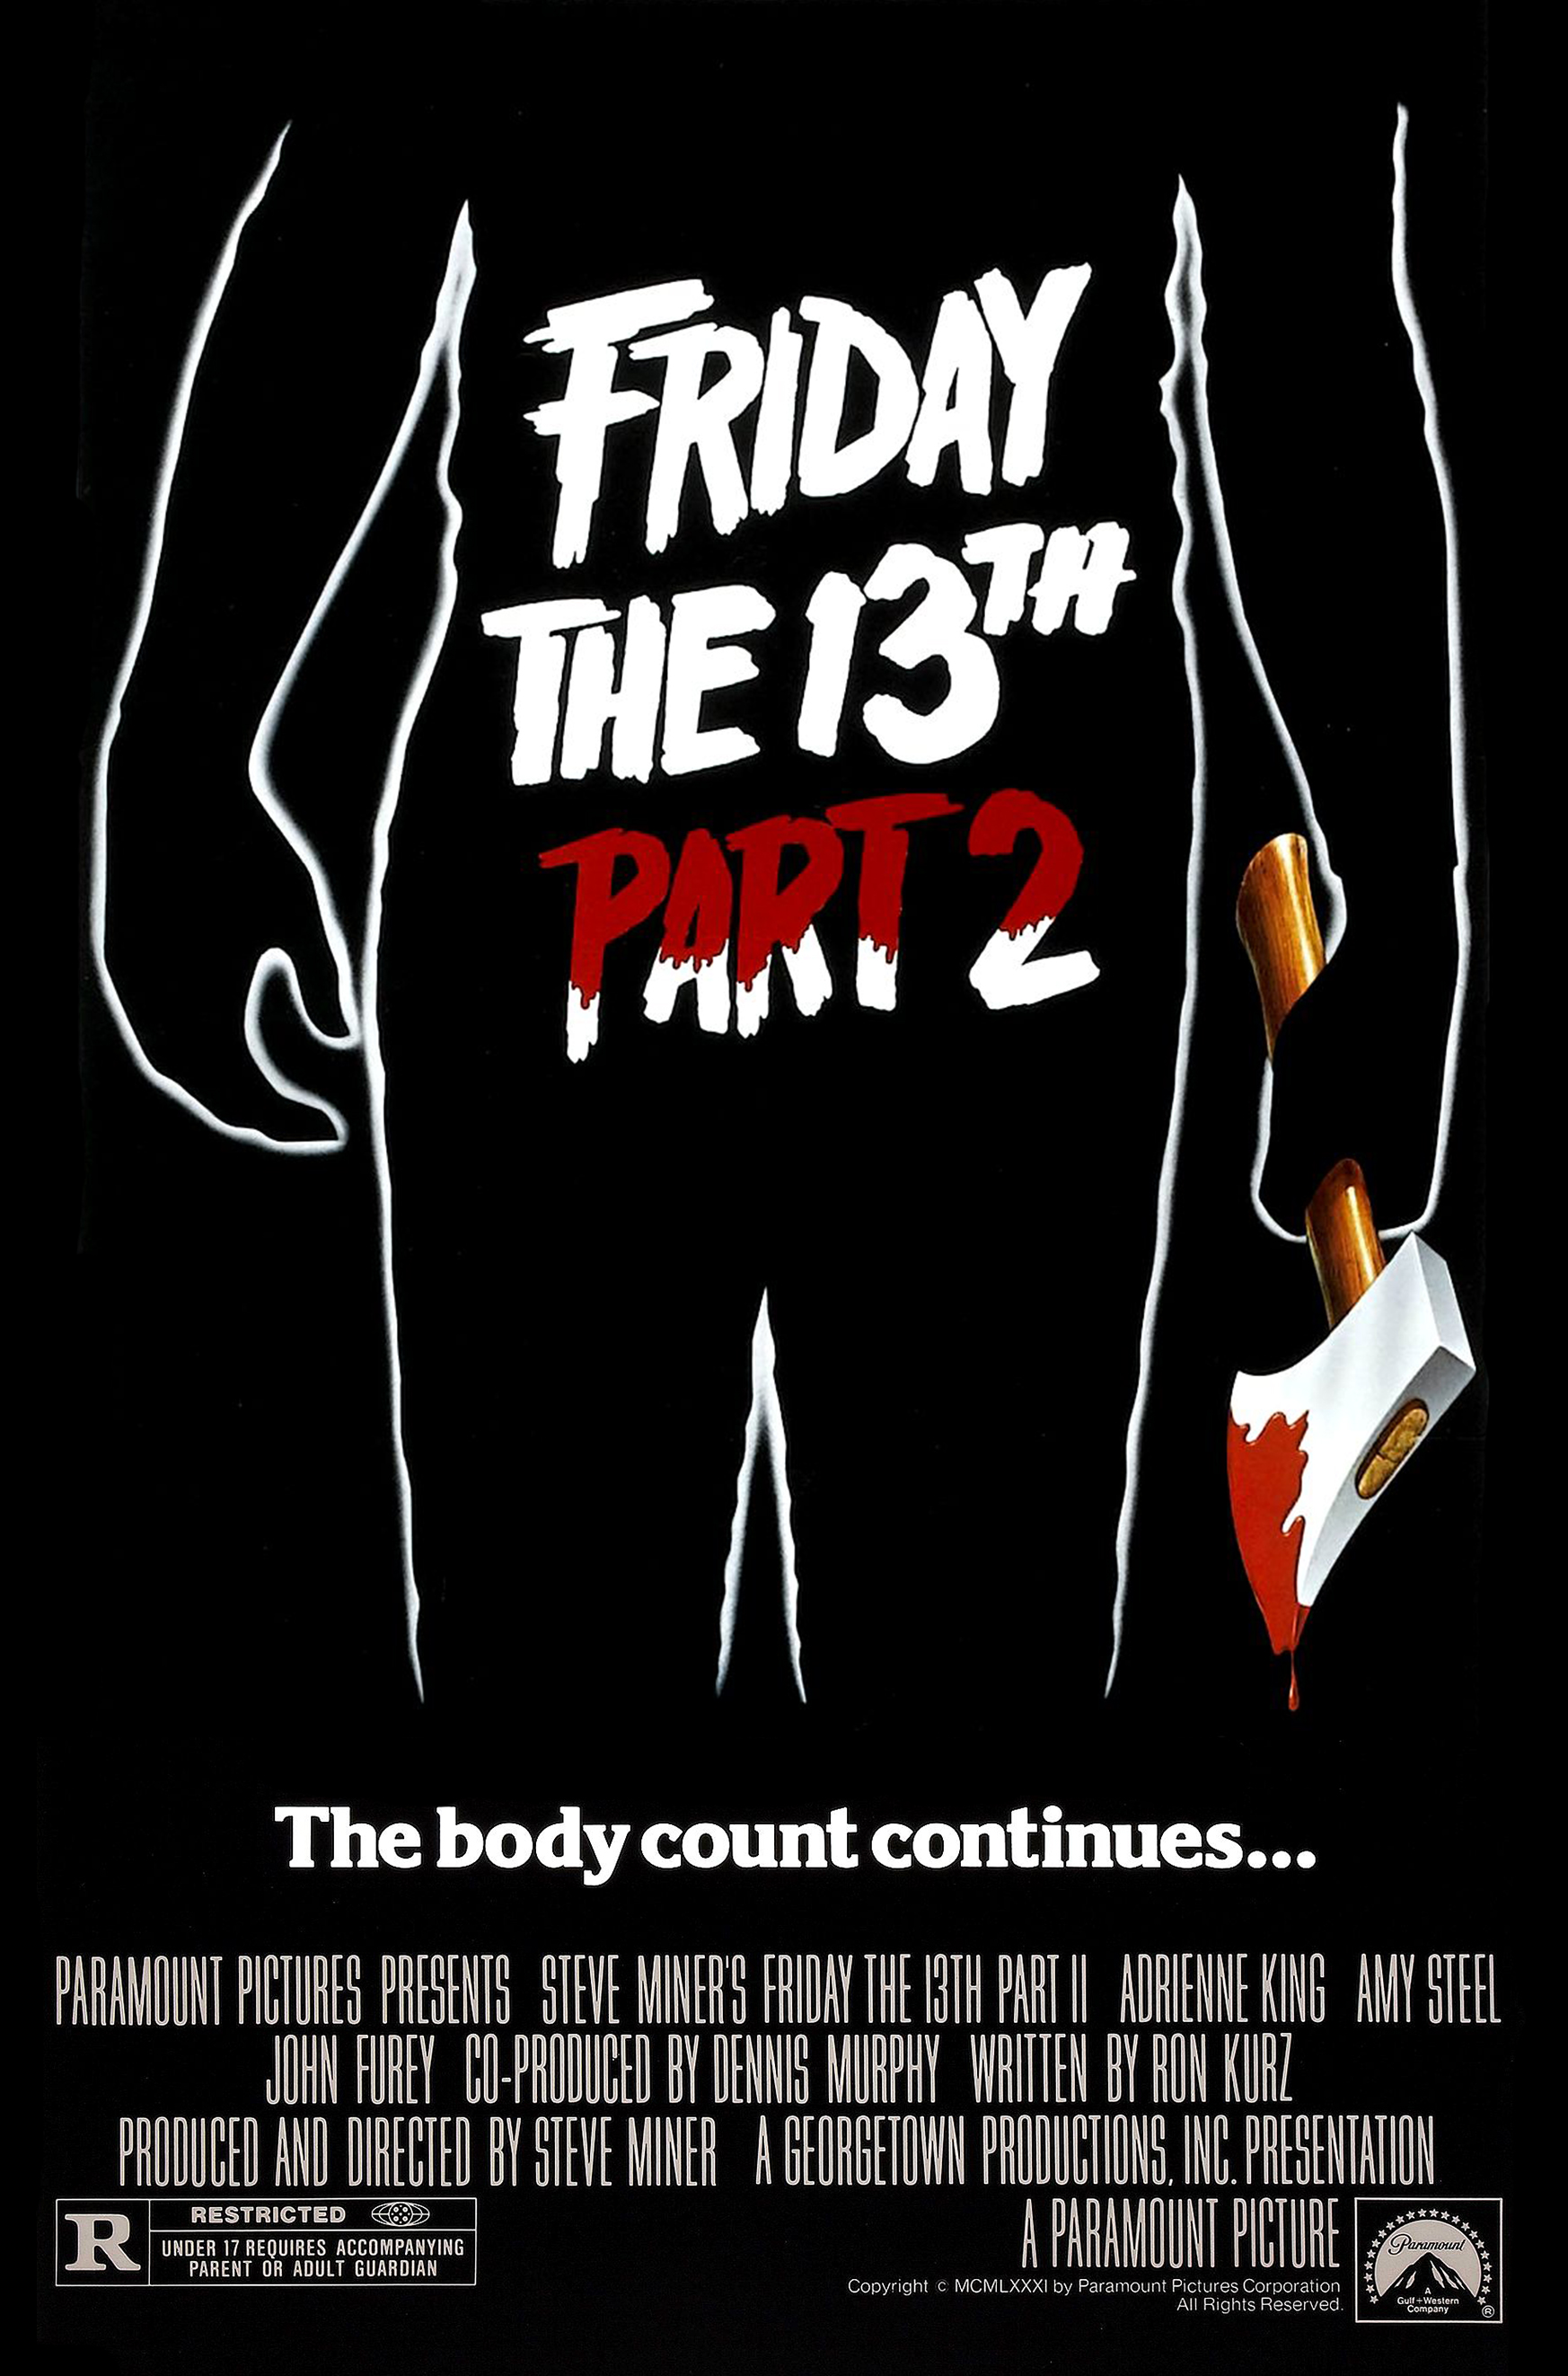 3. Friday the 13th Part 2 (1980) -